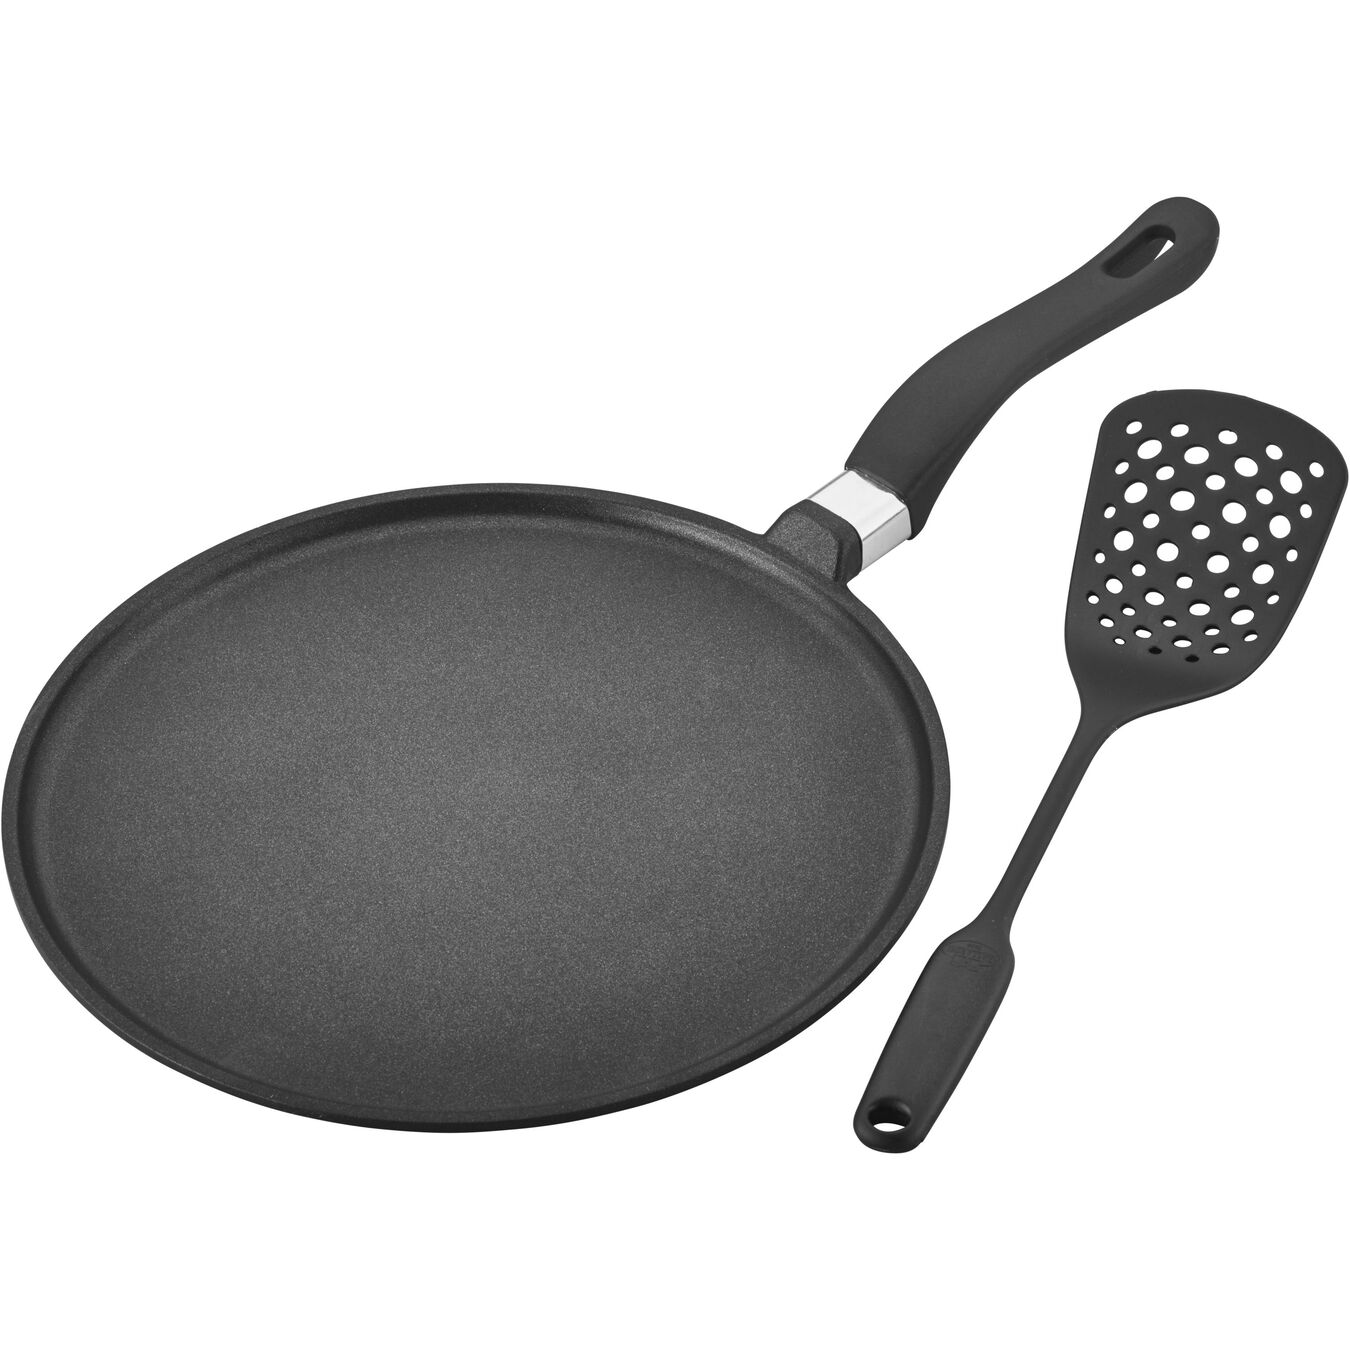 Griddle Pan set,,large 1